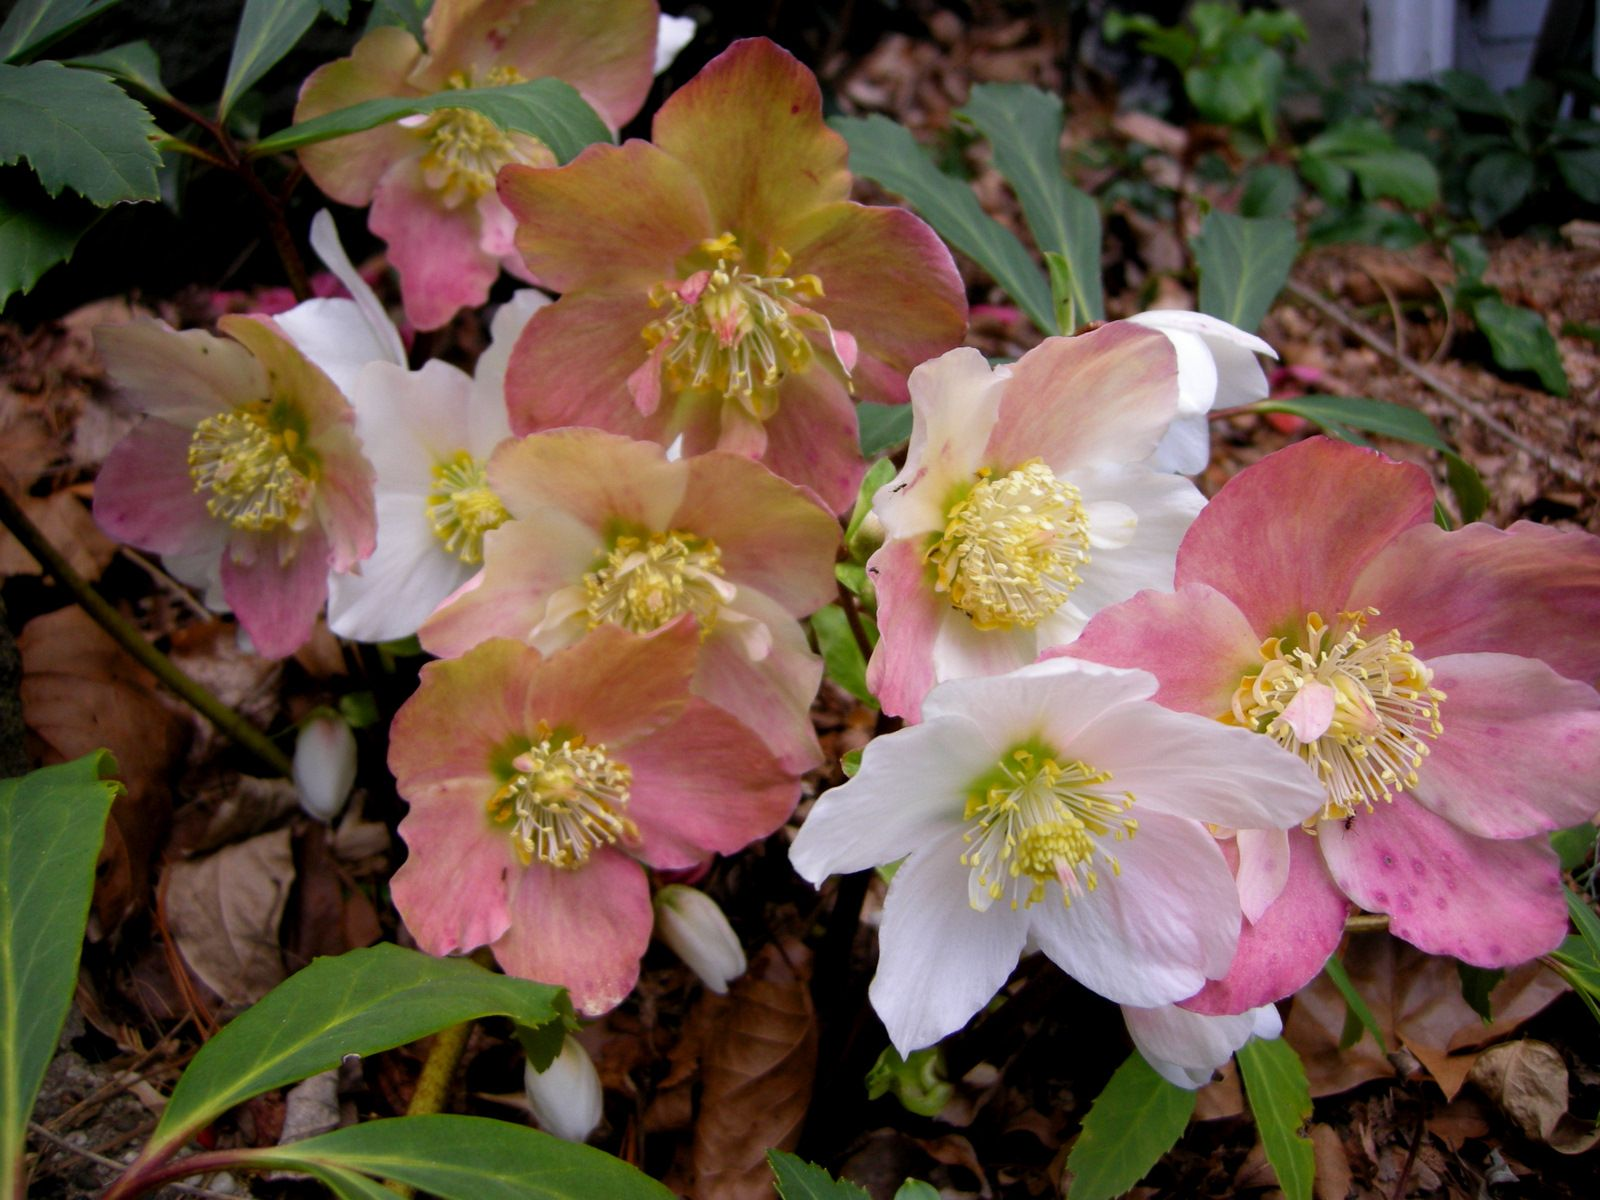 hellebore images starts blooming in the fall see hellebores for fall photo 1 1 12. Black Bedroom Furniture Sets. Home Design Ideas